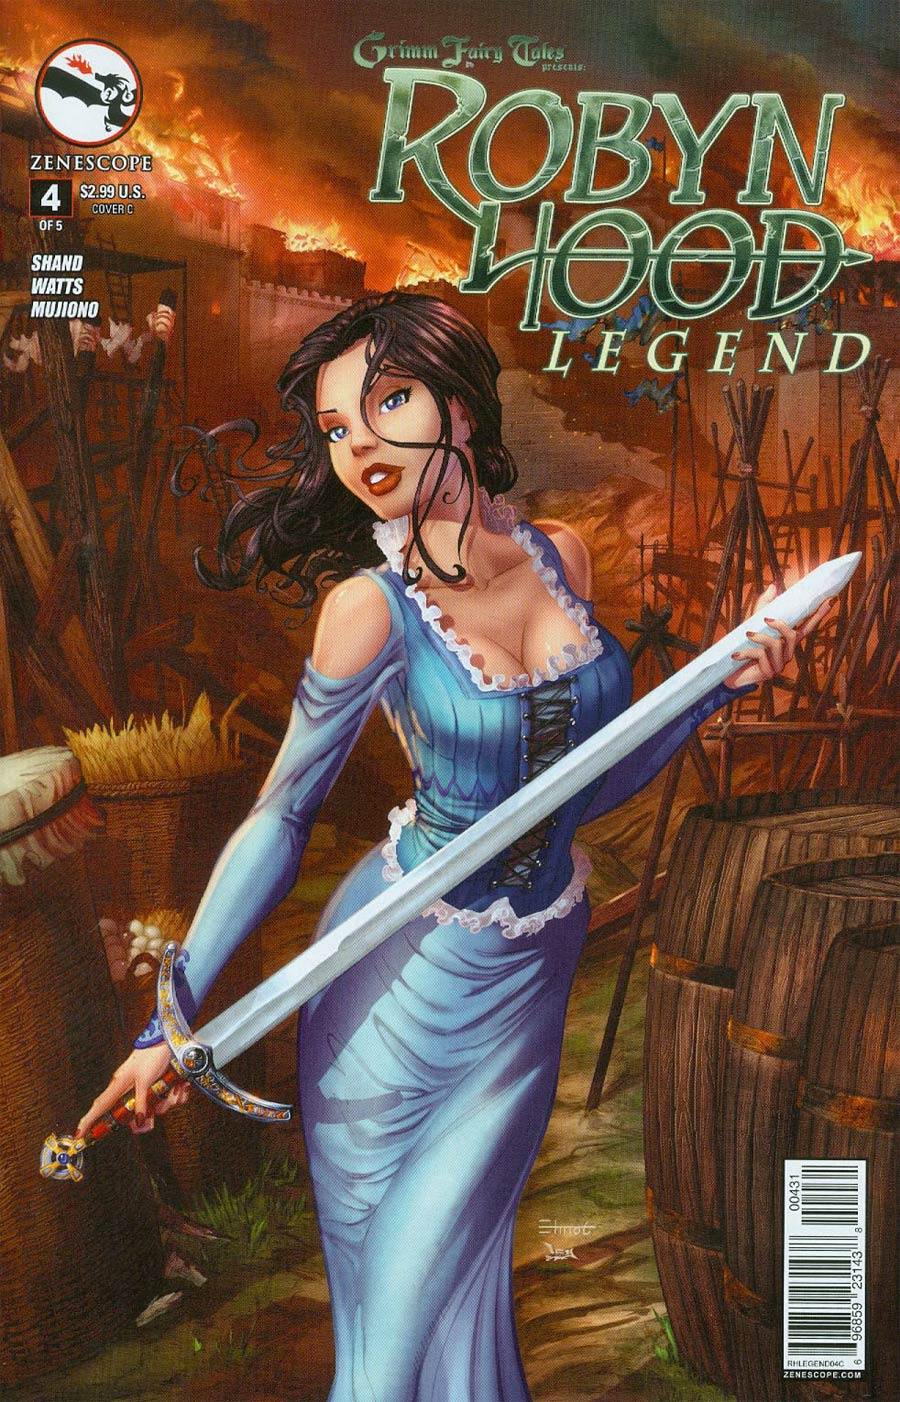 Grimm Fairy Tales Presents Robyn Hood Legend #4 Cover C Chris Ehnot